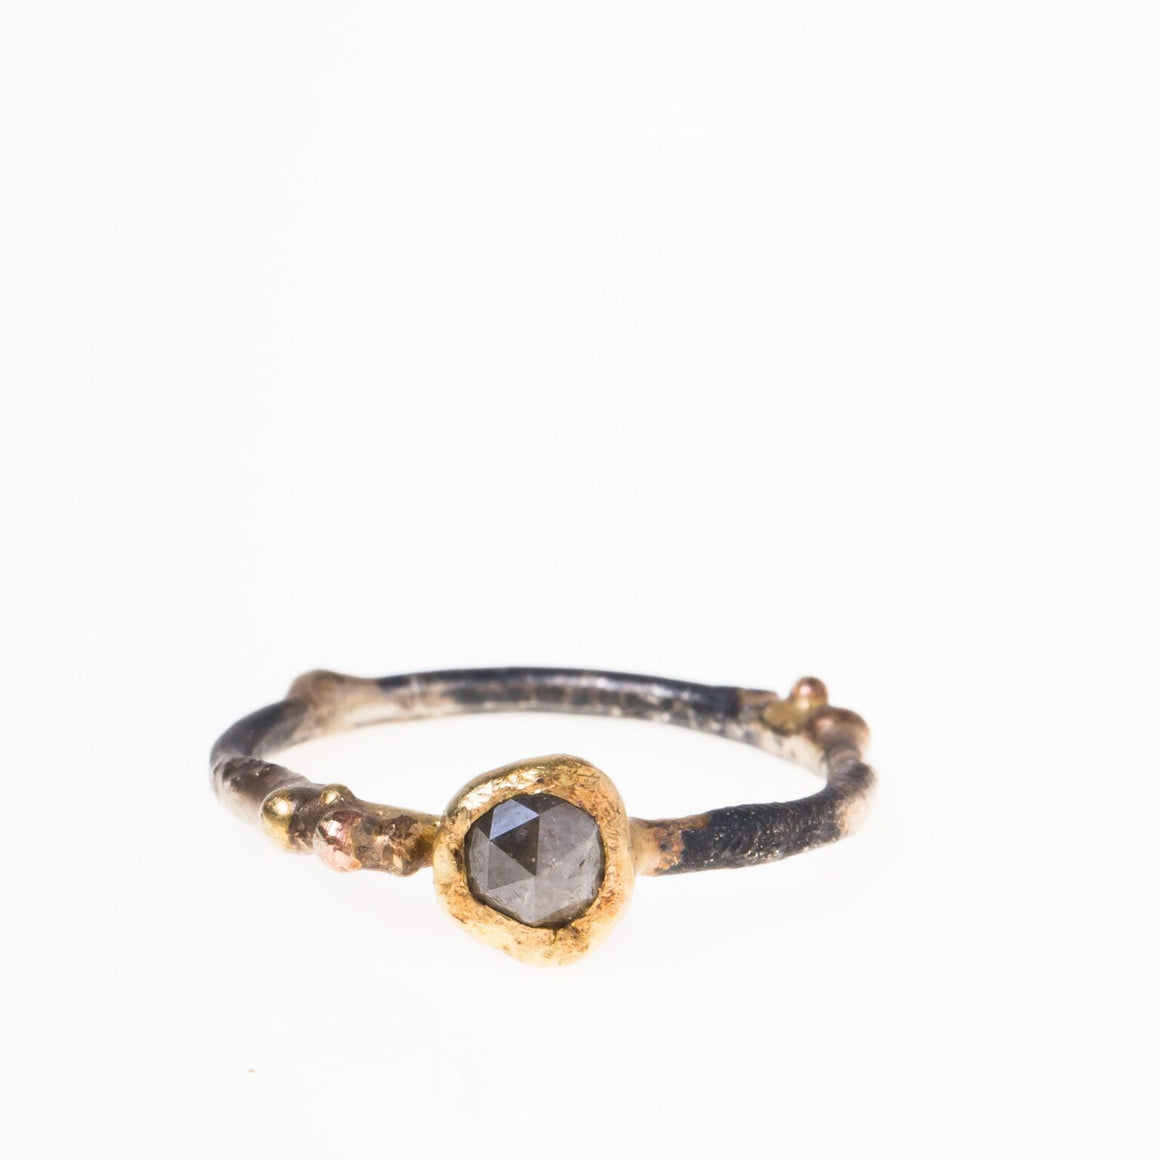 14-18K Grey Diamond Ring on Skinny Band - KESTREL